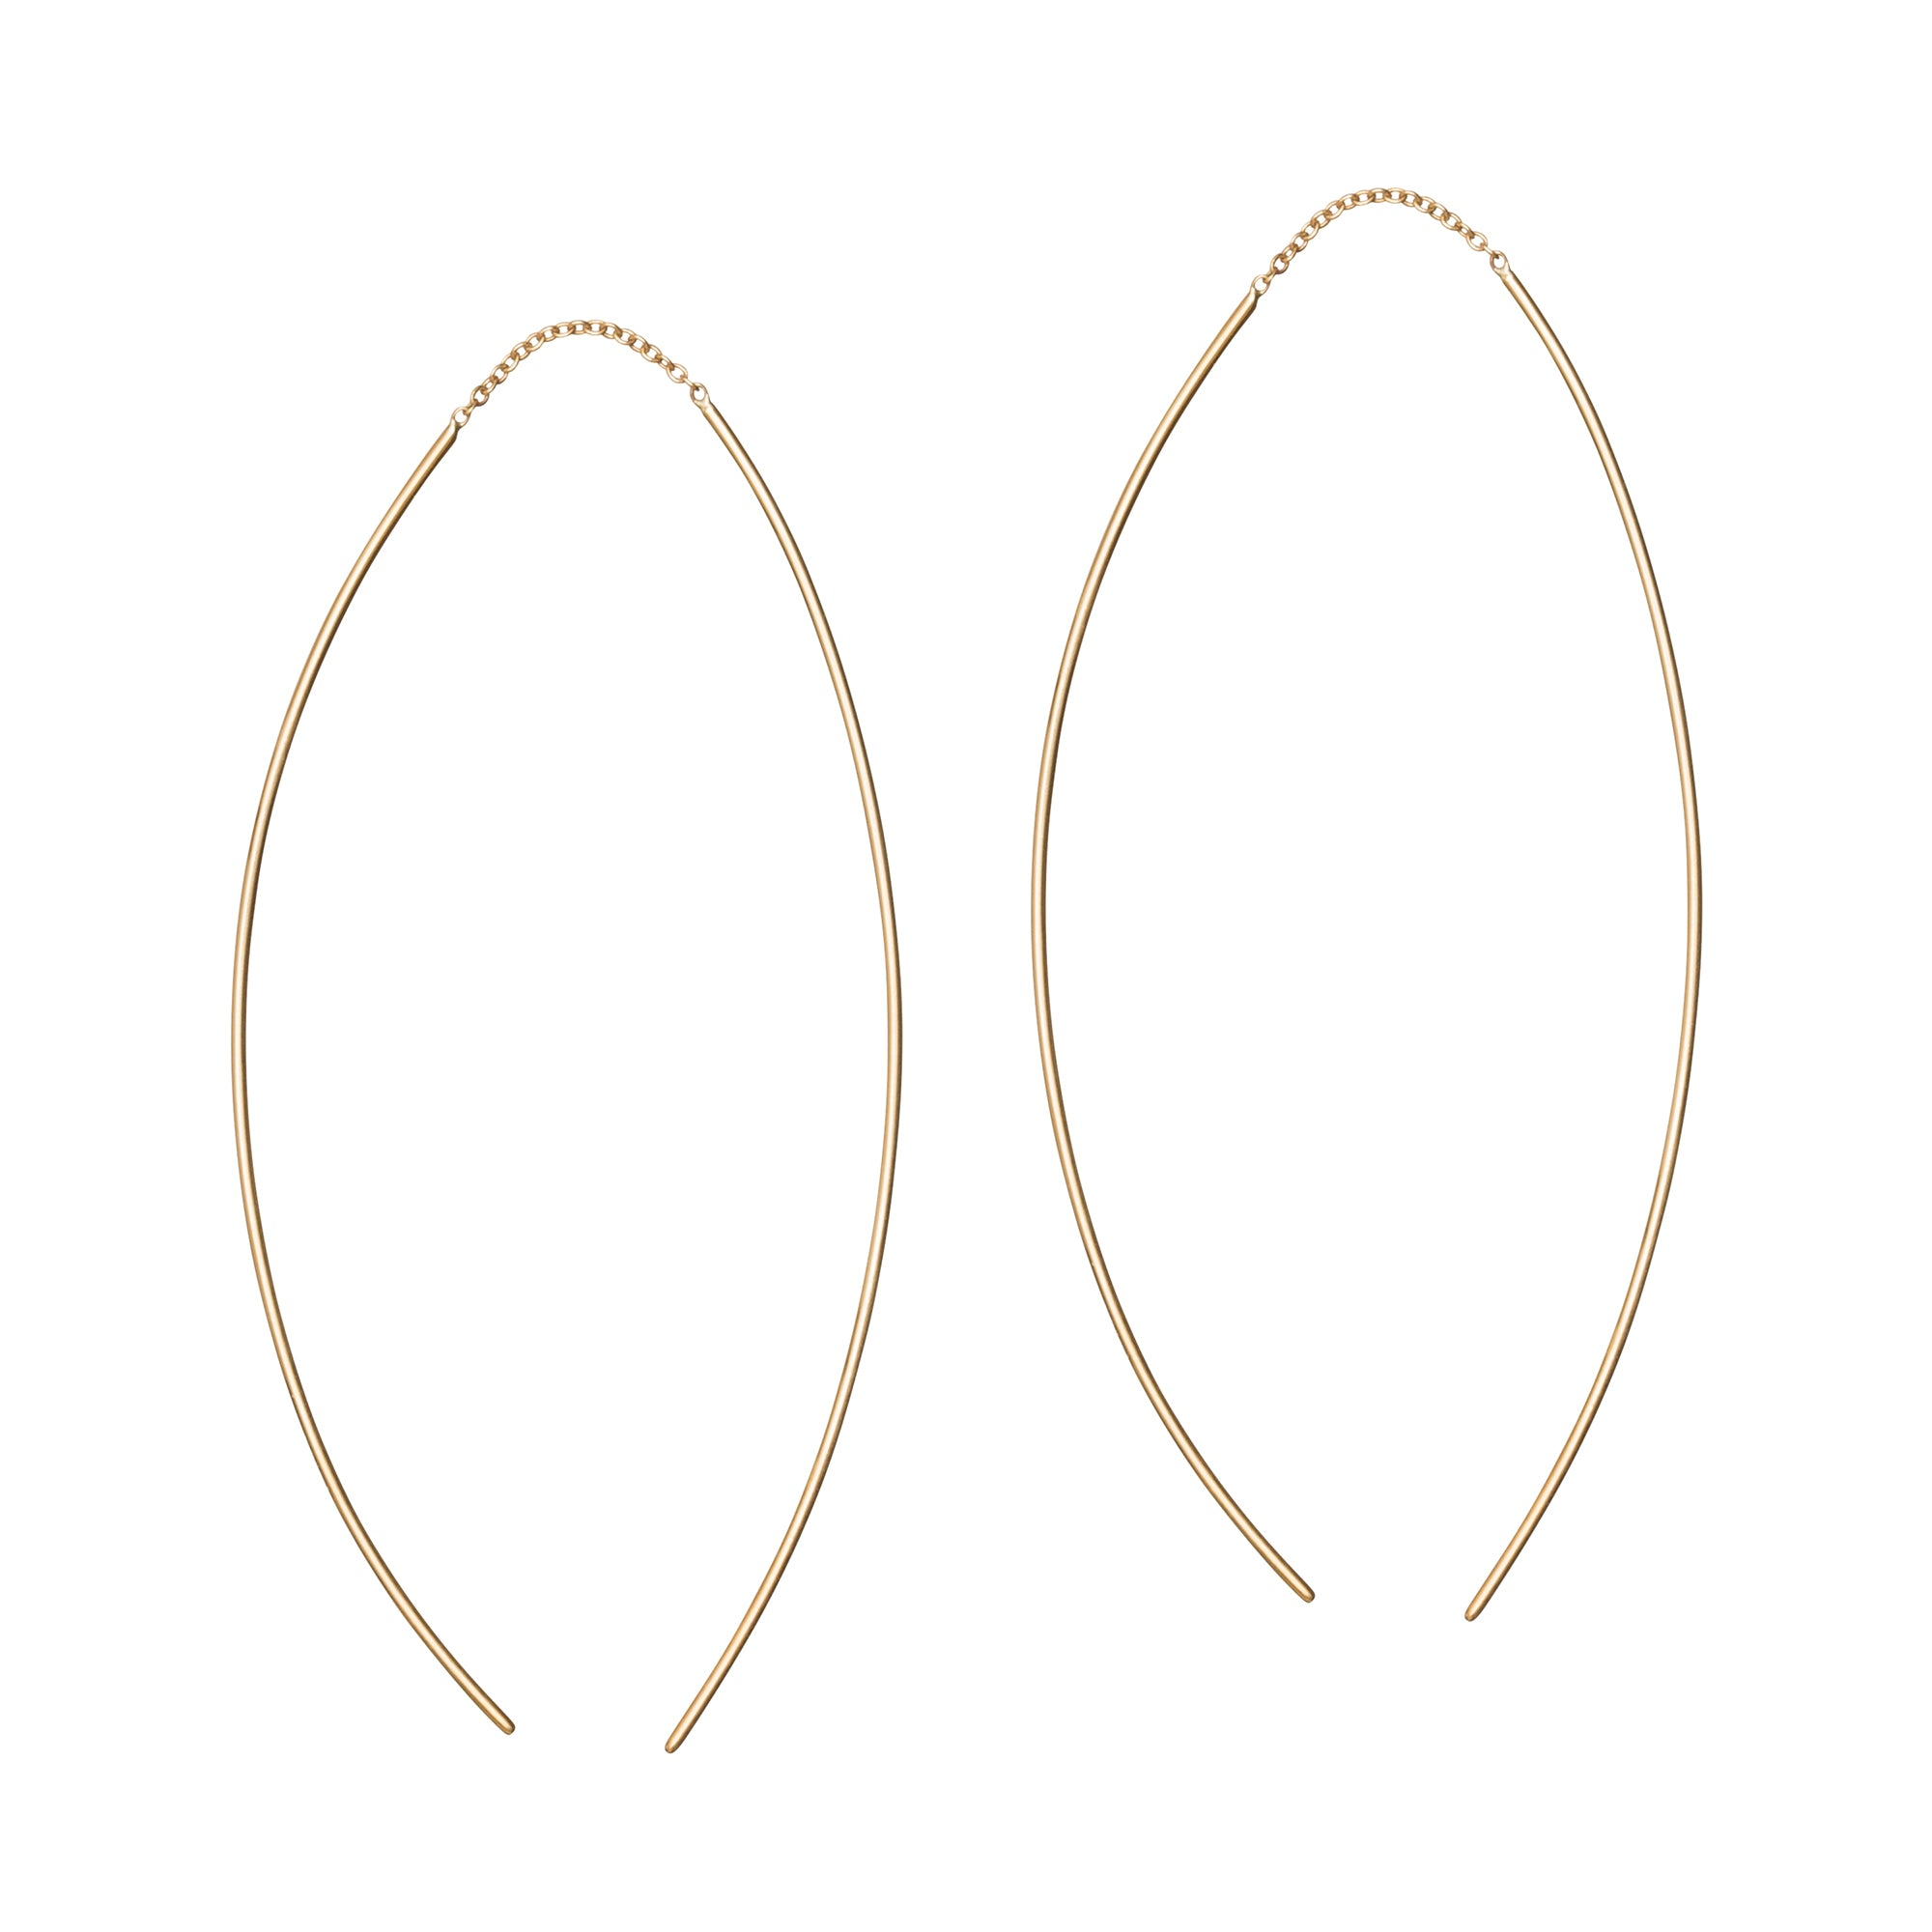 Pull Through Earrings by Suel for Broken English Jewelry